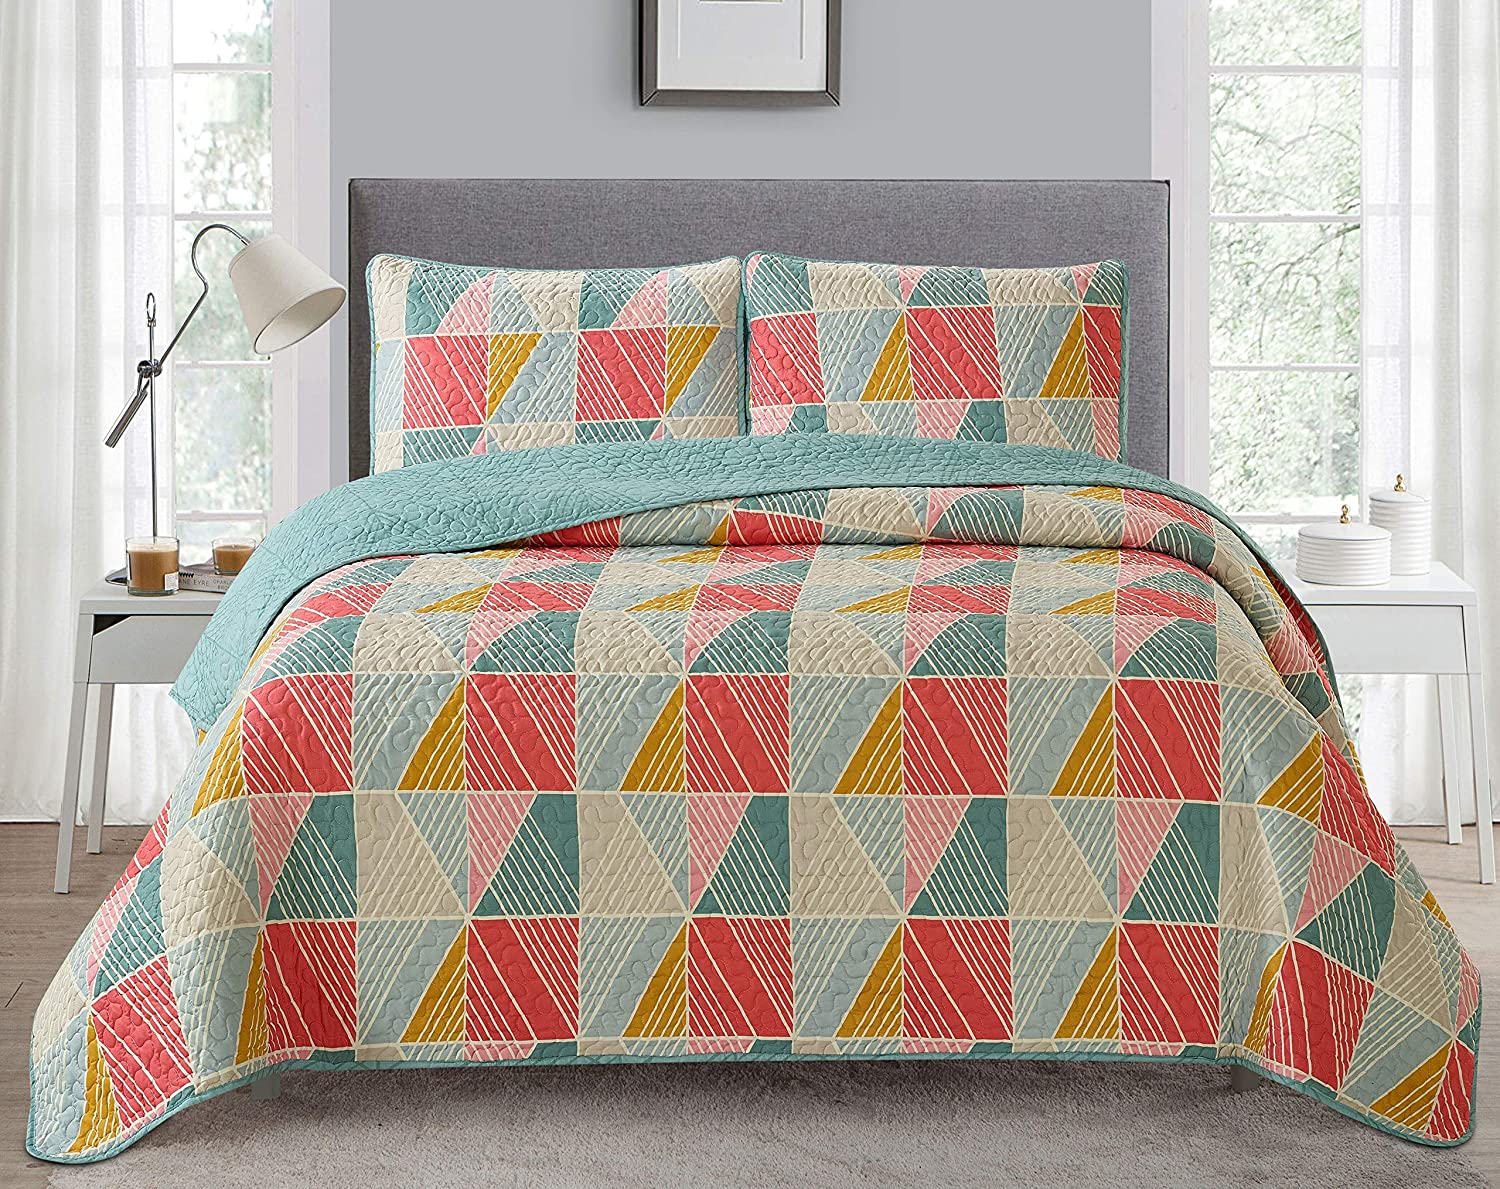 Go-U Set Universal Home Fashions Quilt, King, Marianna